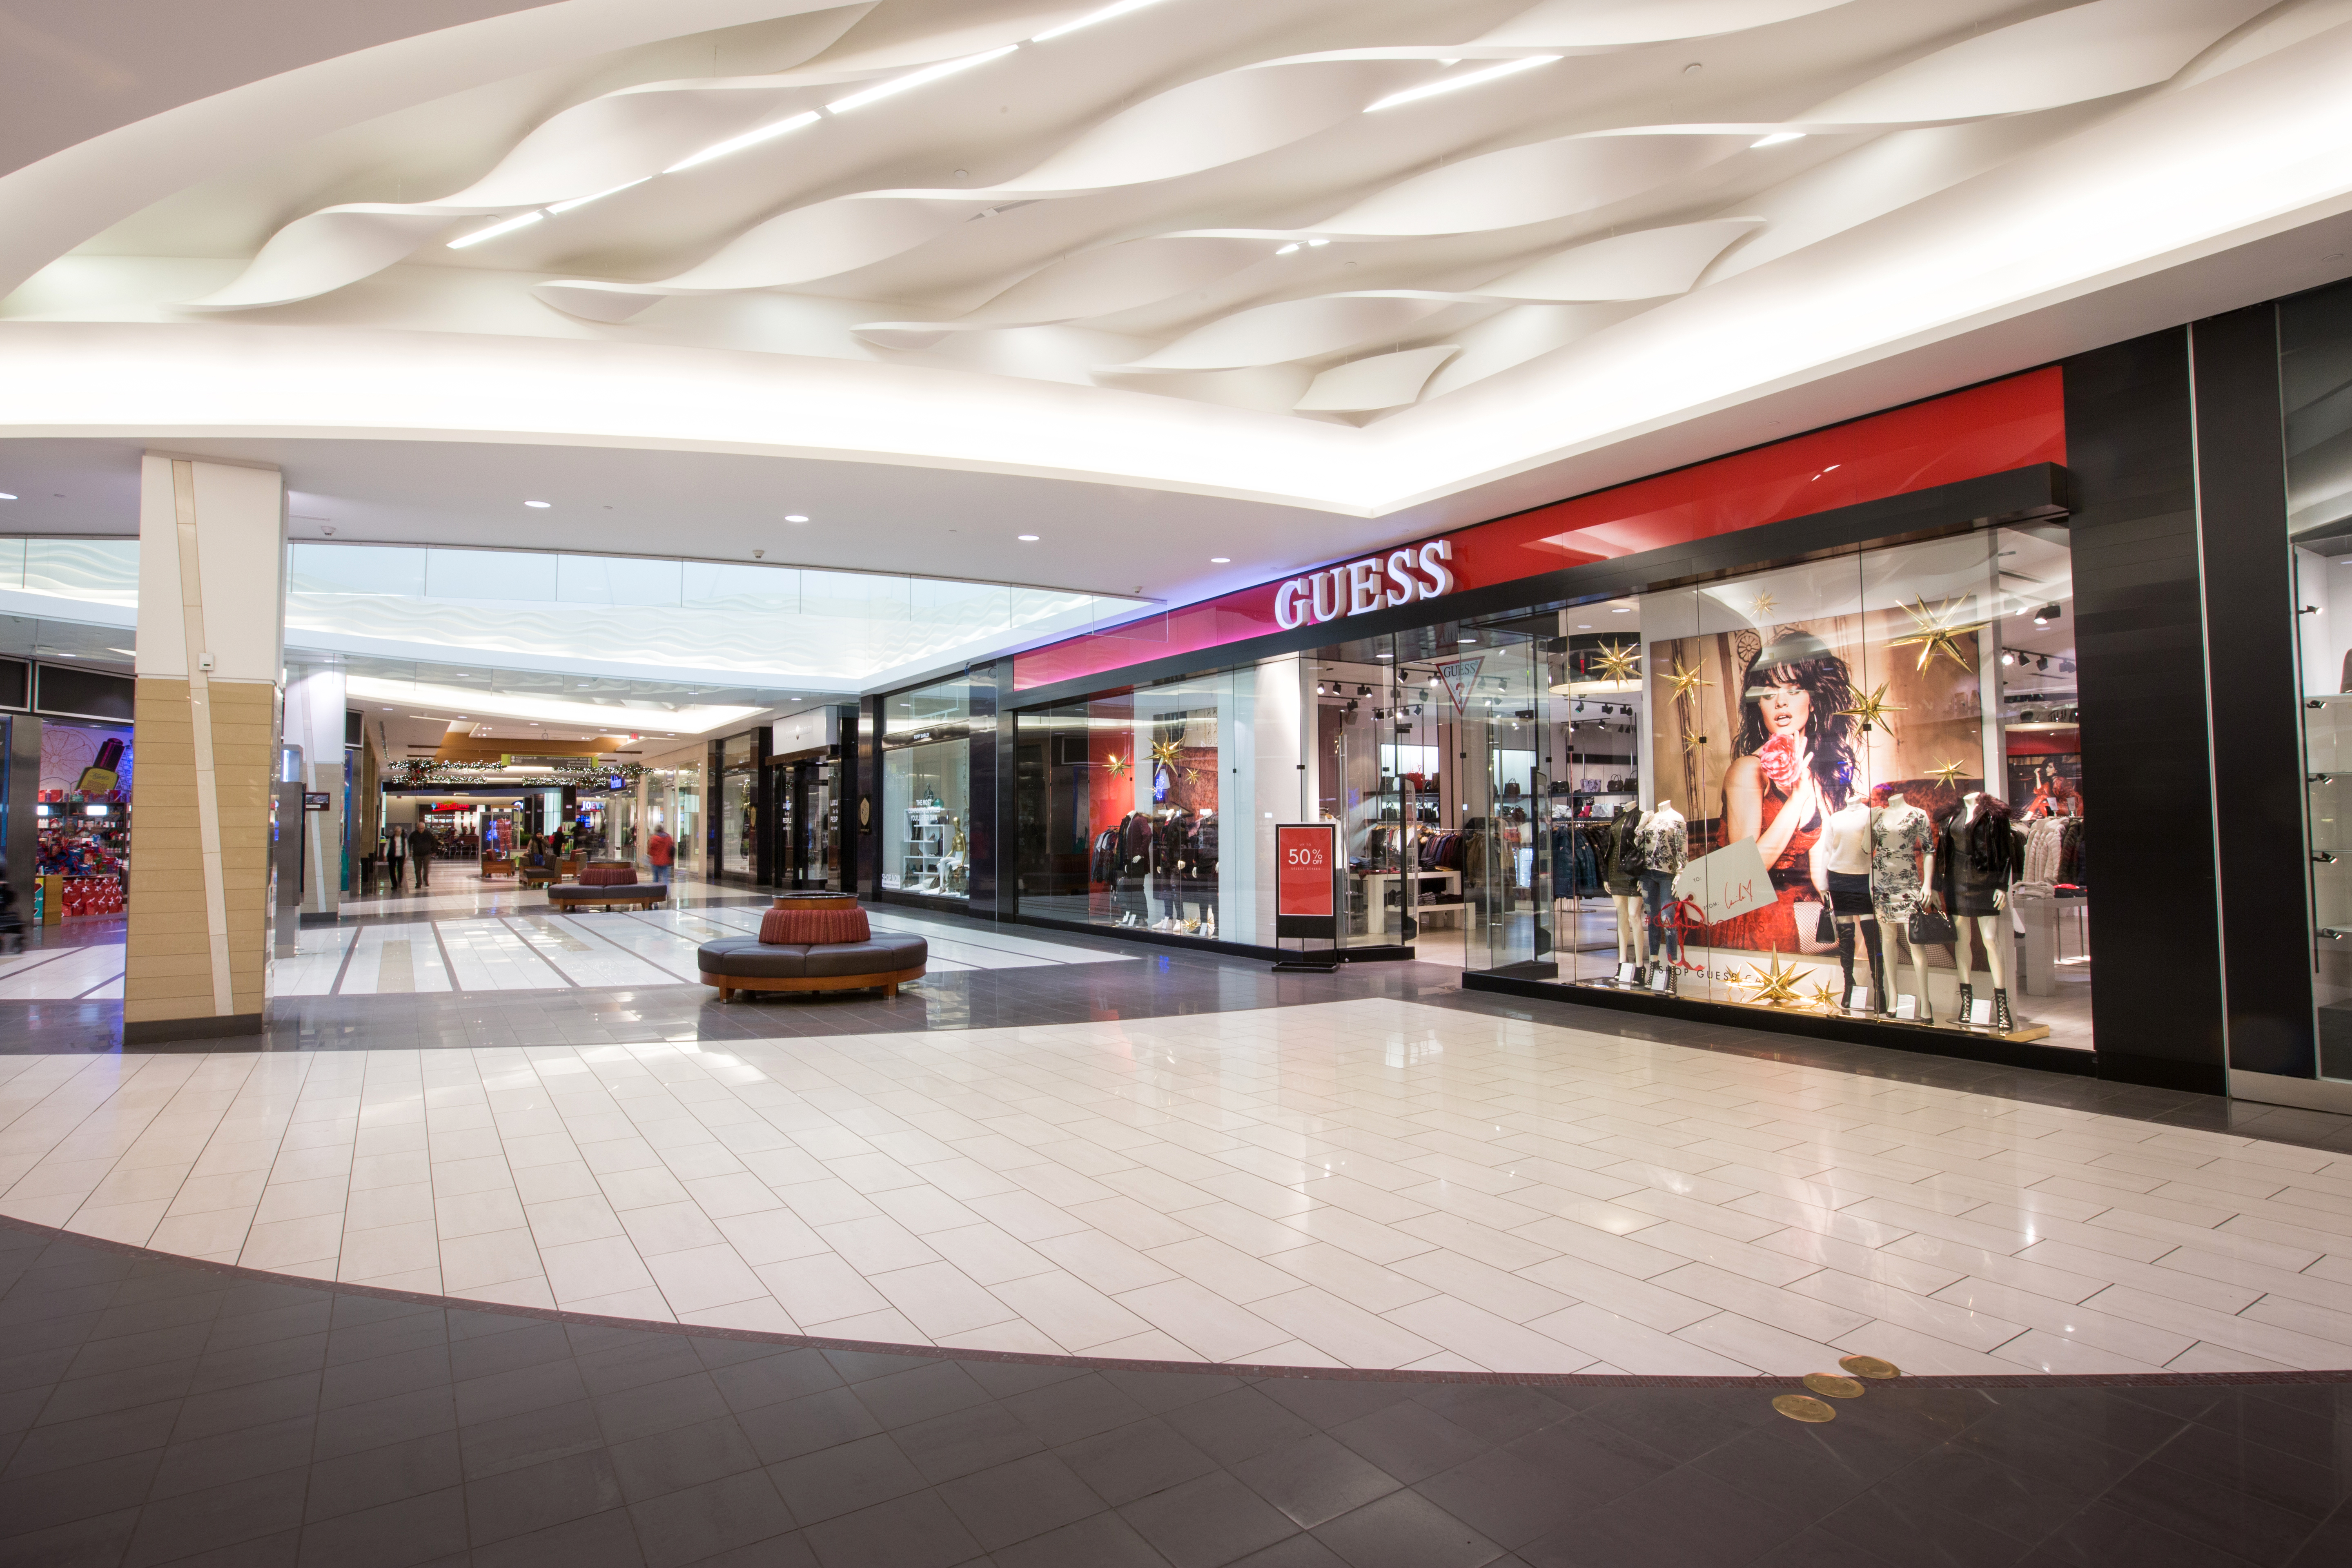 Storefront of Guess store in Southgate Centre shopping mall